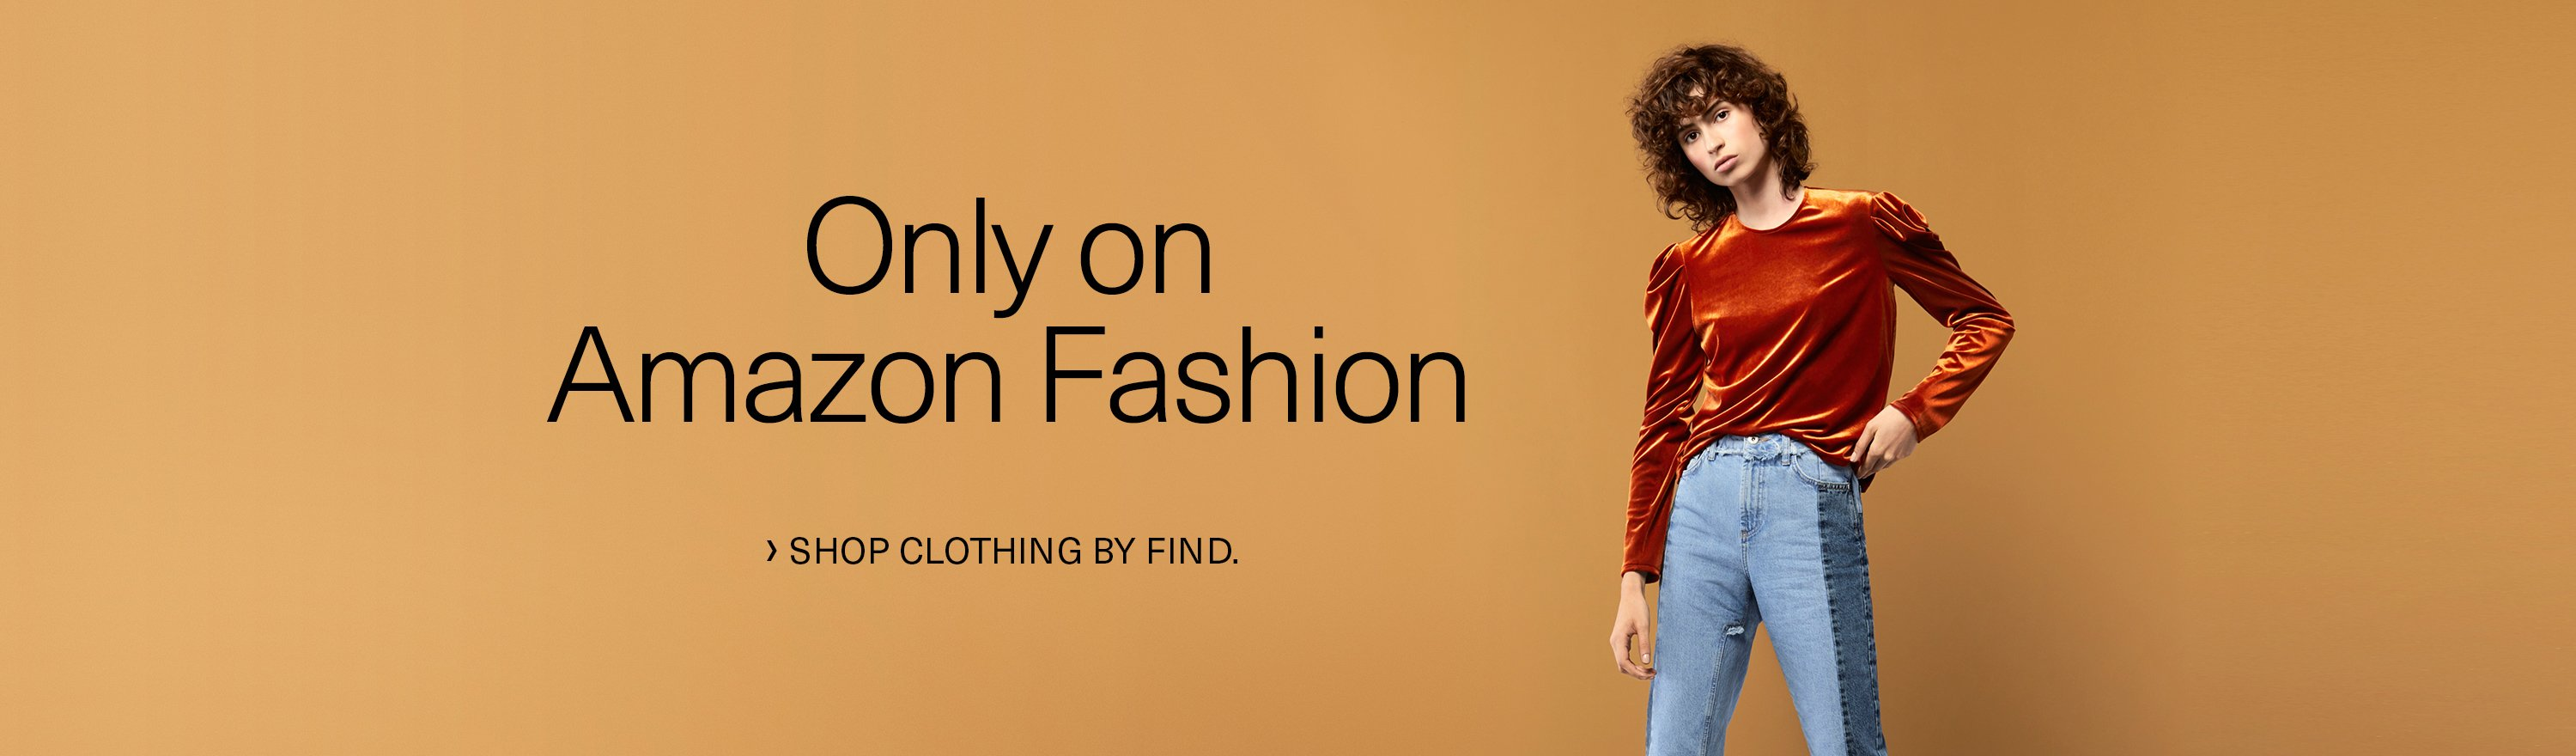 Only on Amazon Fashion - Shop clothing by find.